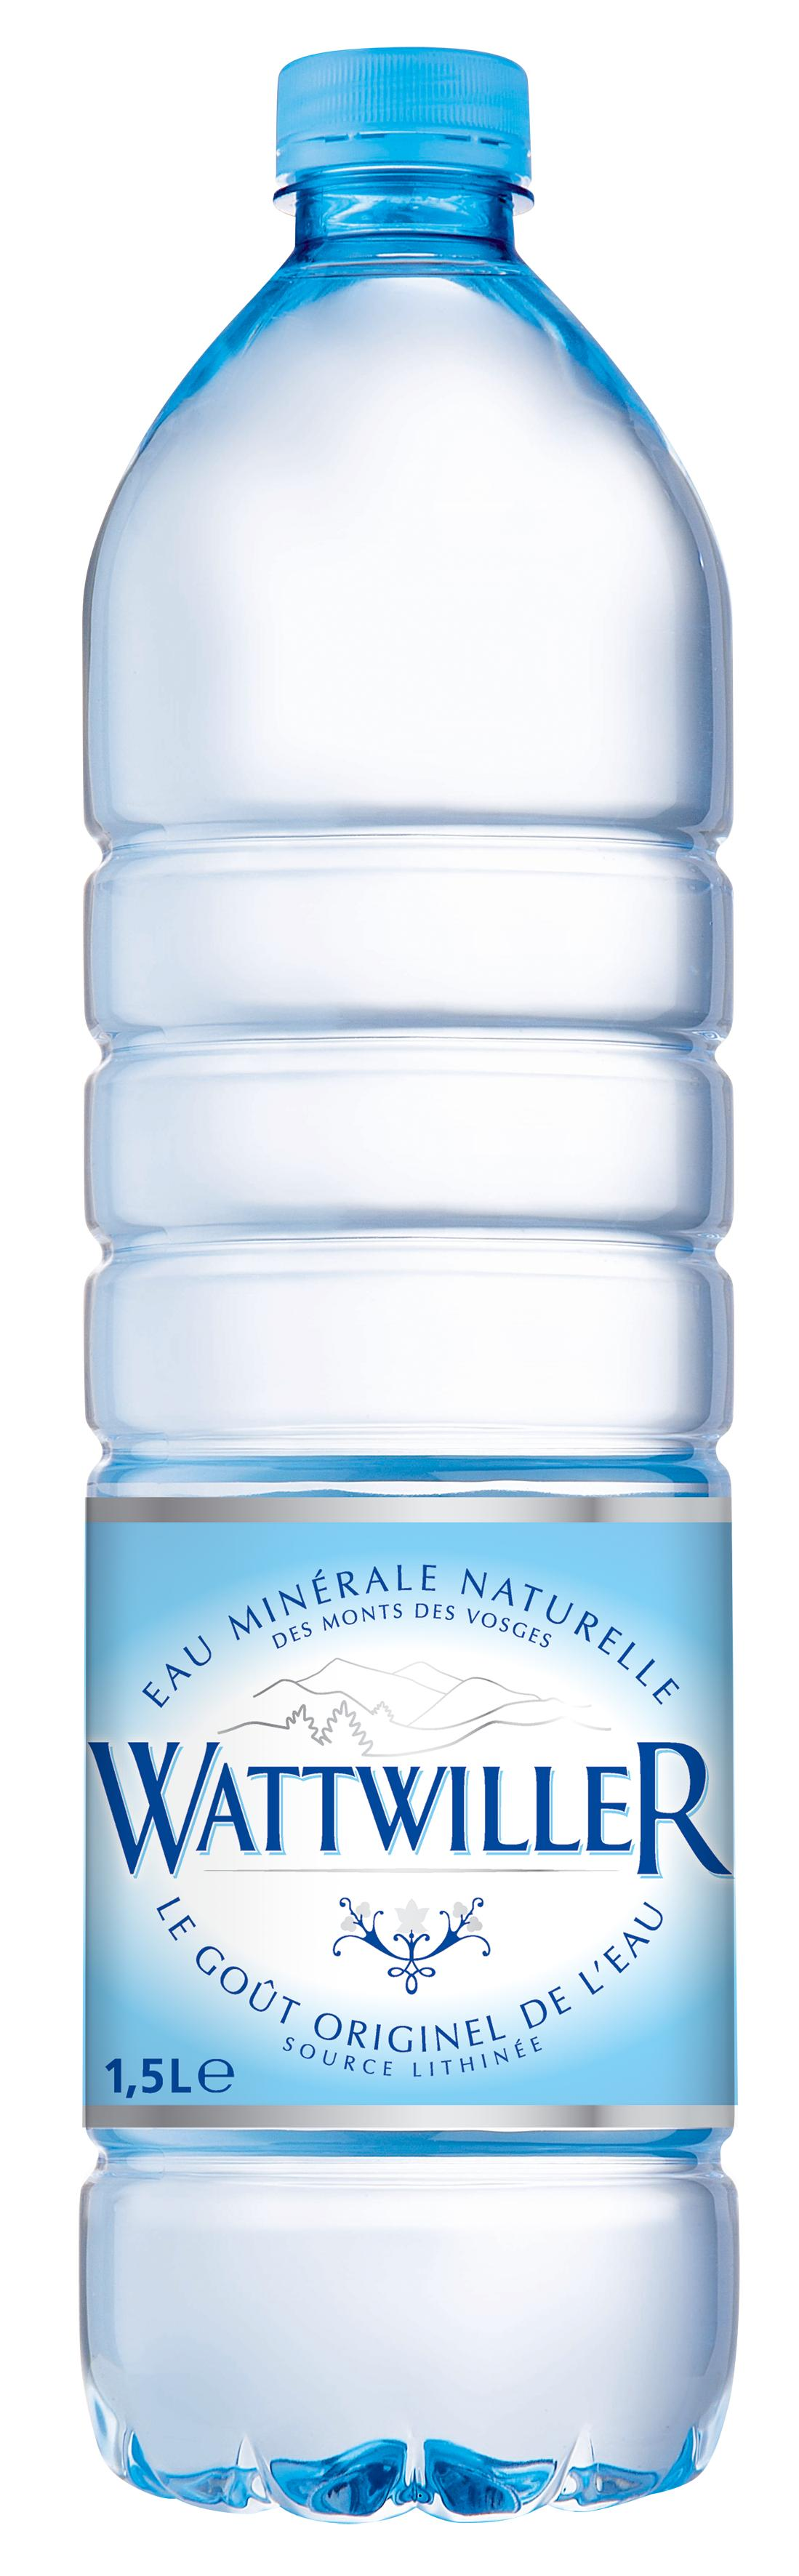 Sparkling Water And Their Positioning In The Bottled Water Market